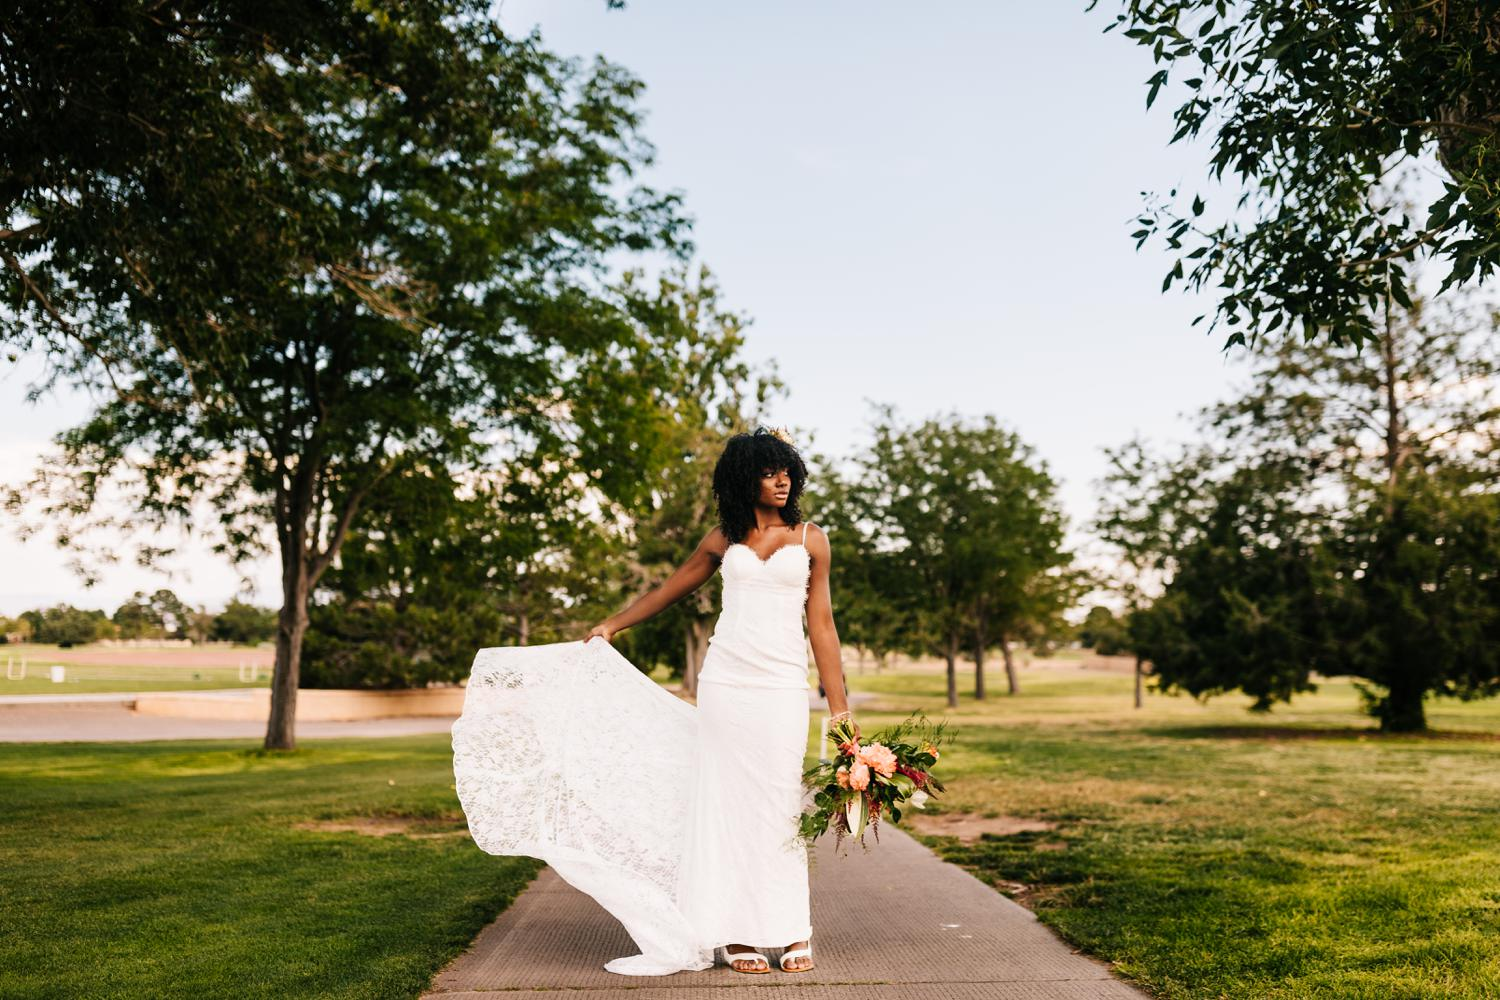 Bride flipping dress with vibrant flowers in tropical themed New Mexico Wedding